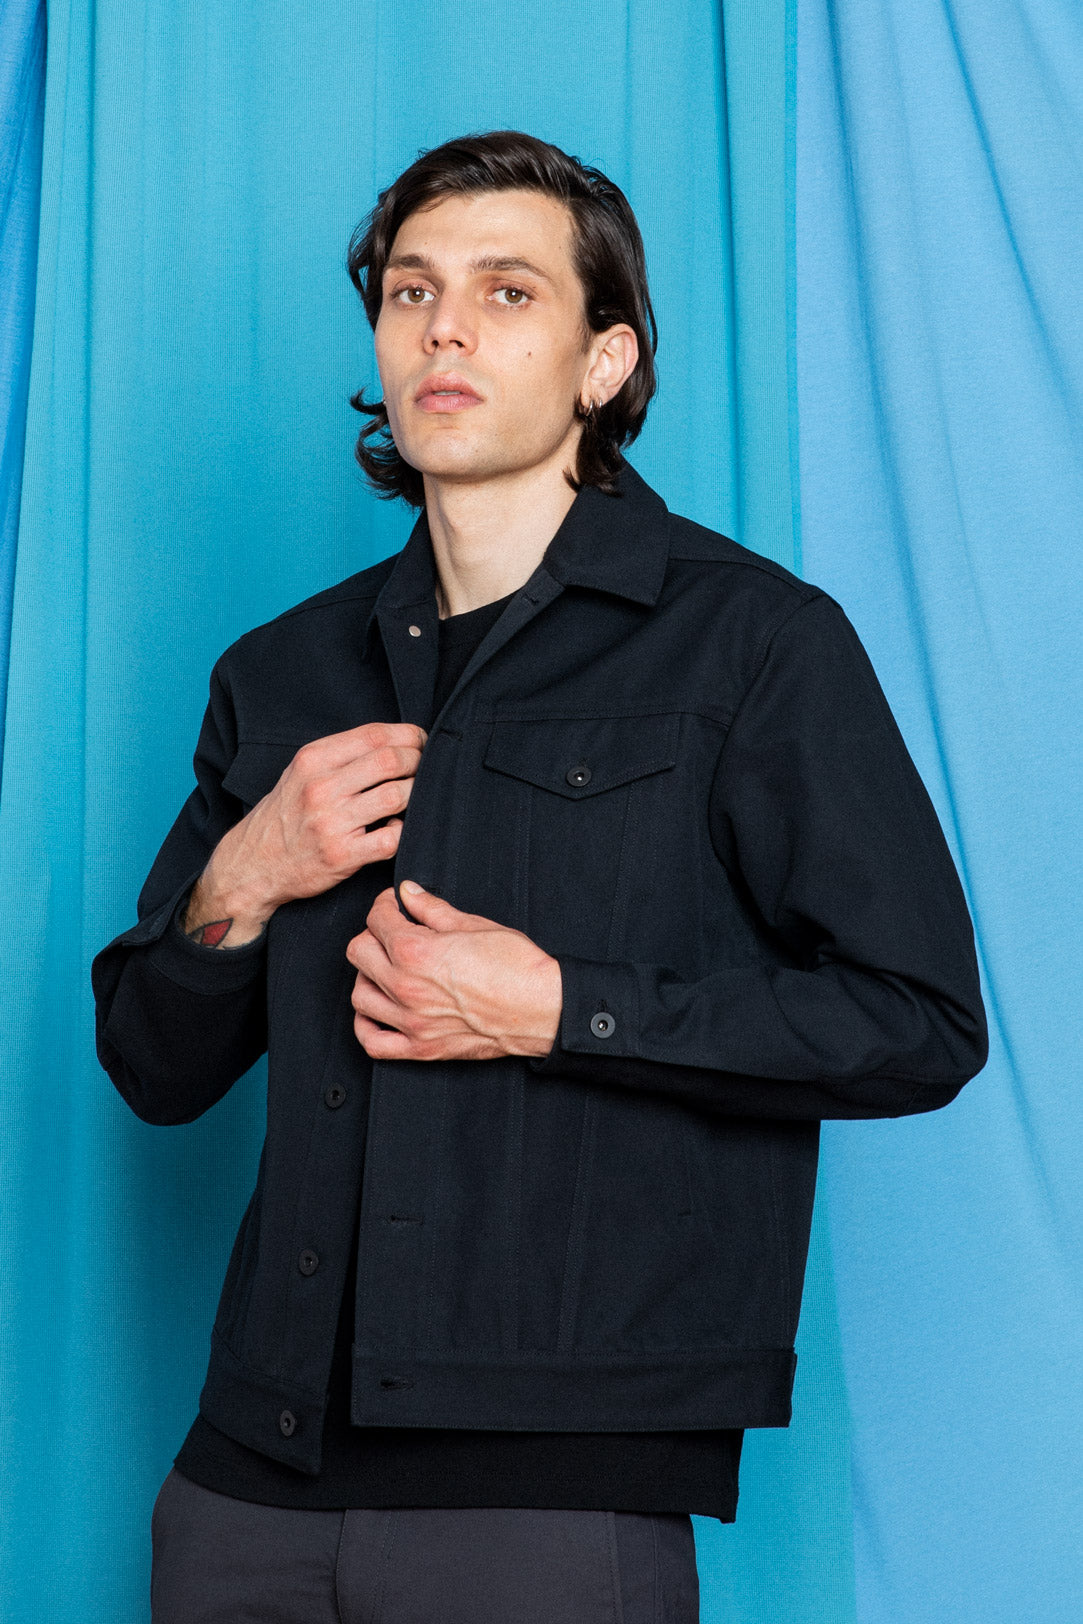 Fit Image of Daniele weathing the Experiment 249 - Duckcloth Shank Jacket in Black